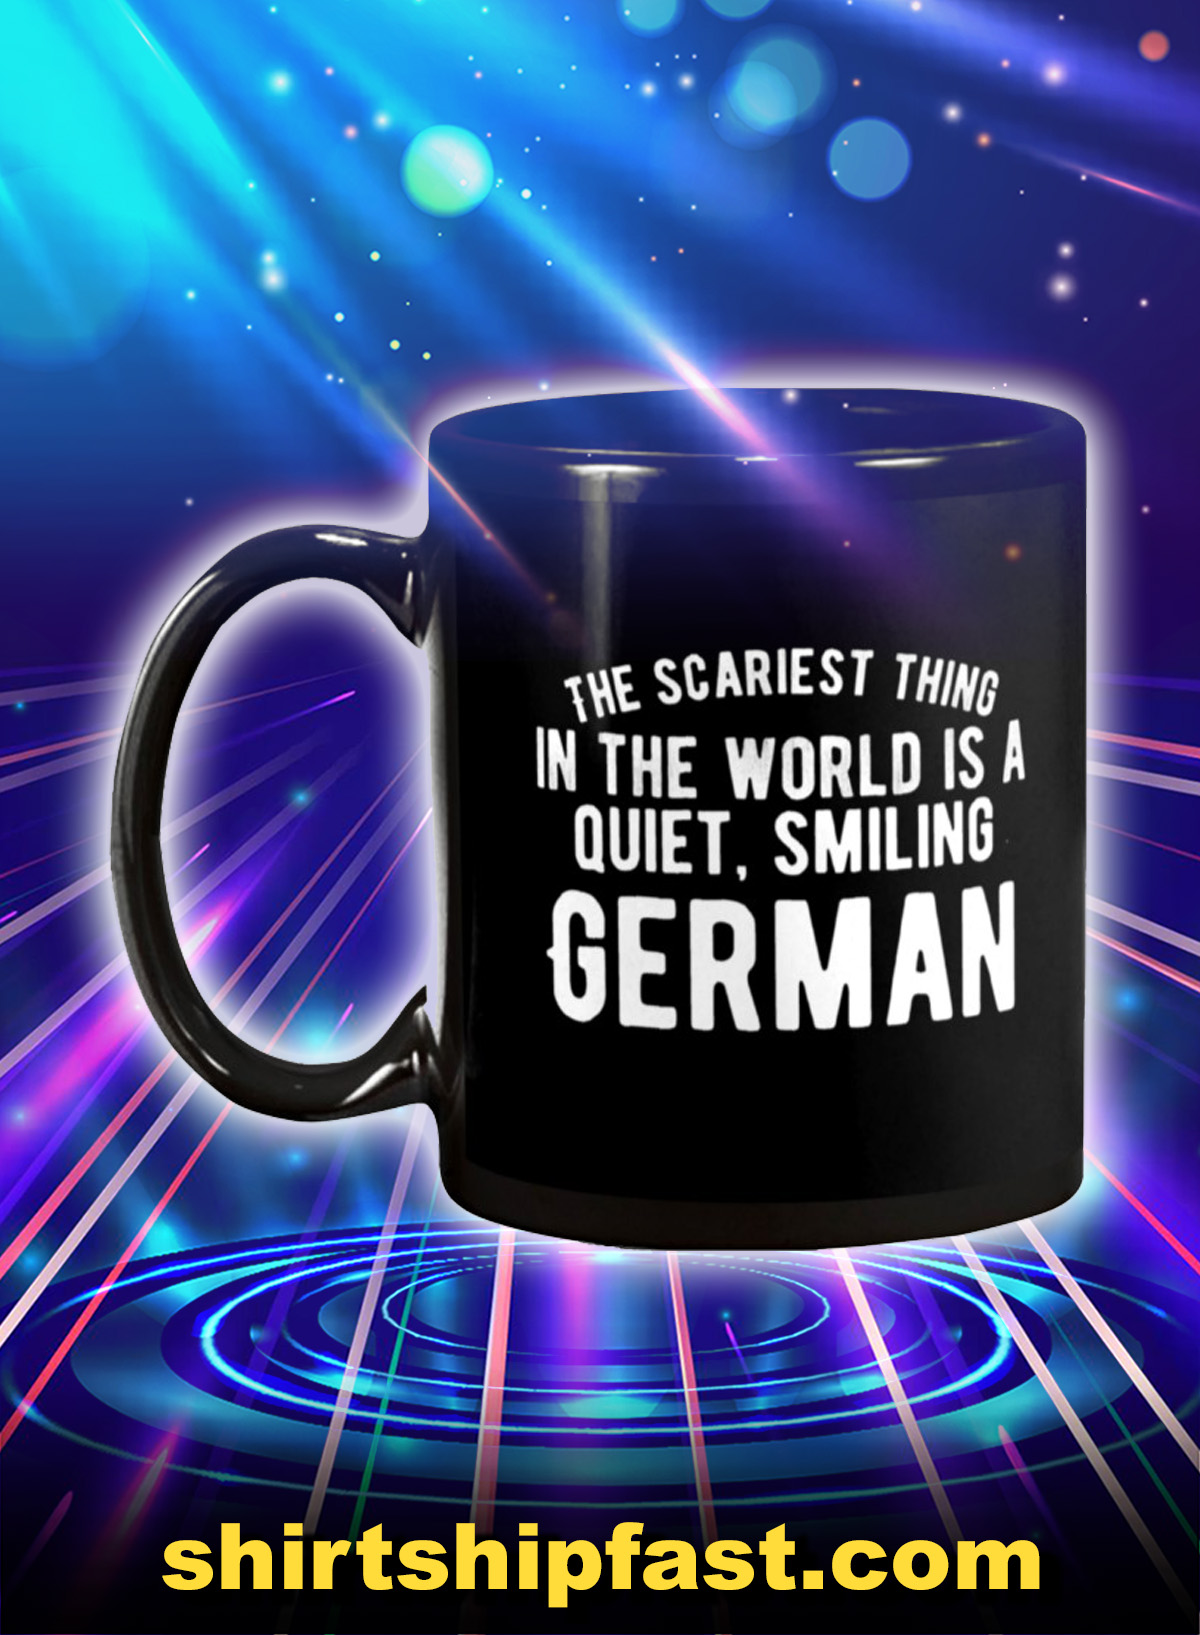 The scariest thing in the world is a quiet smiling german mug - Picture 1